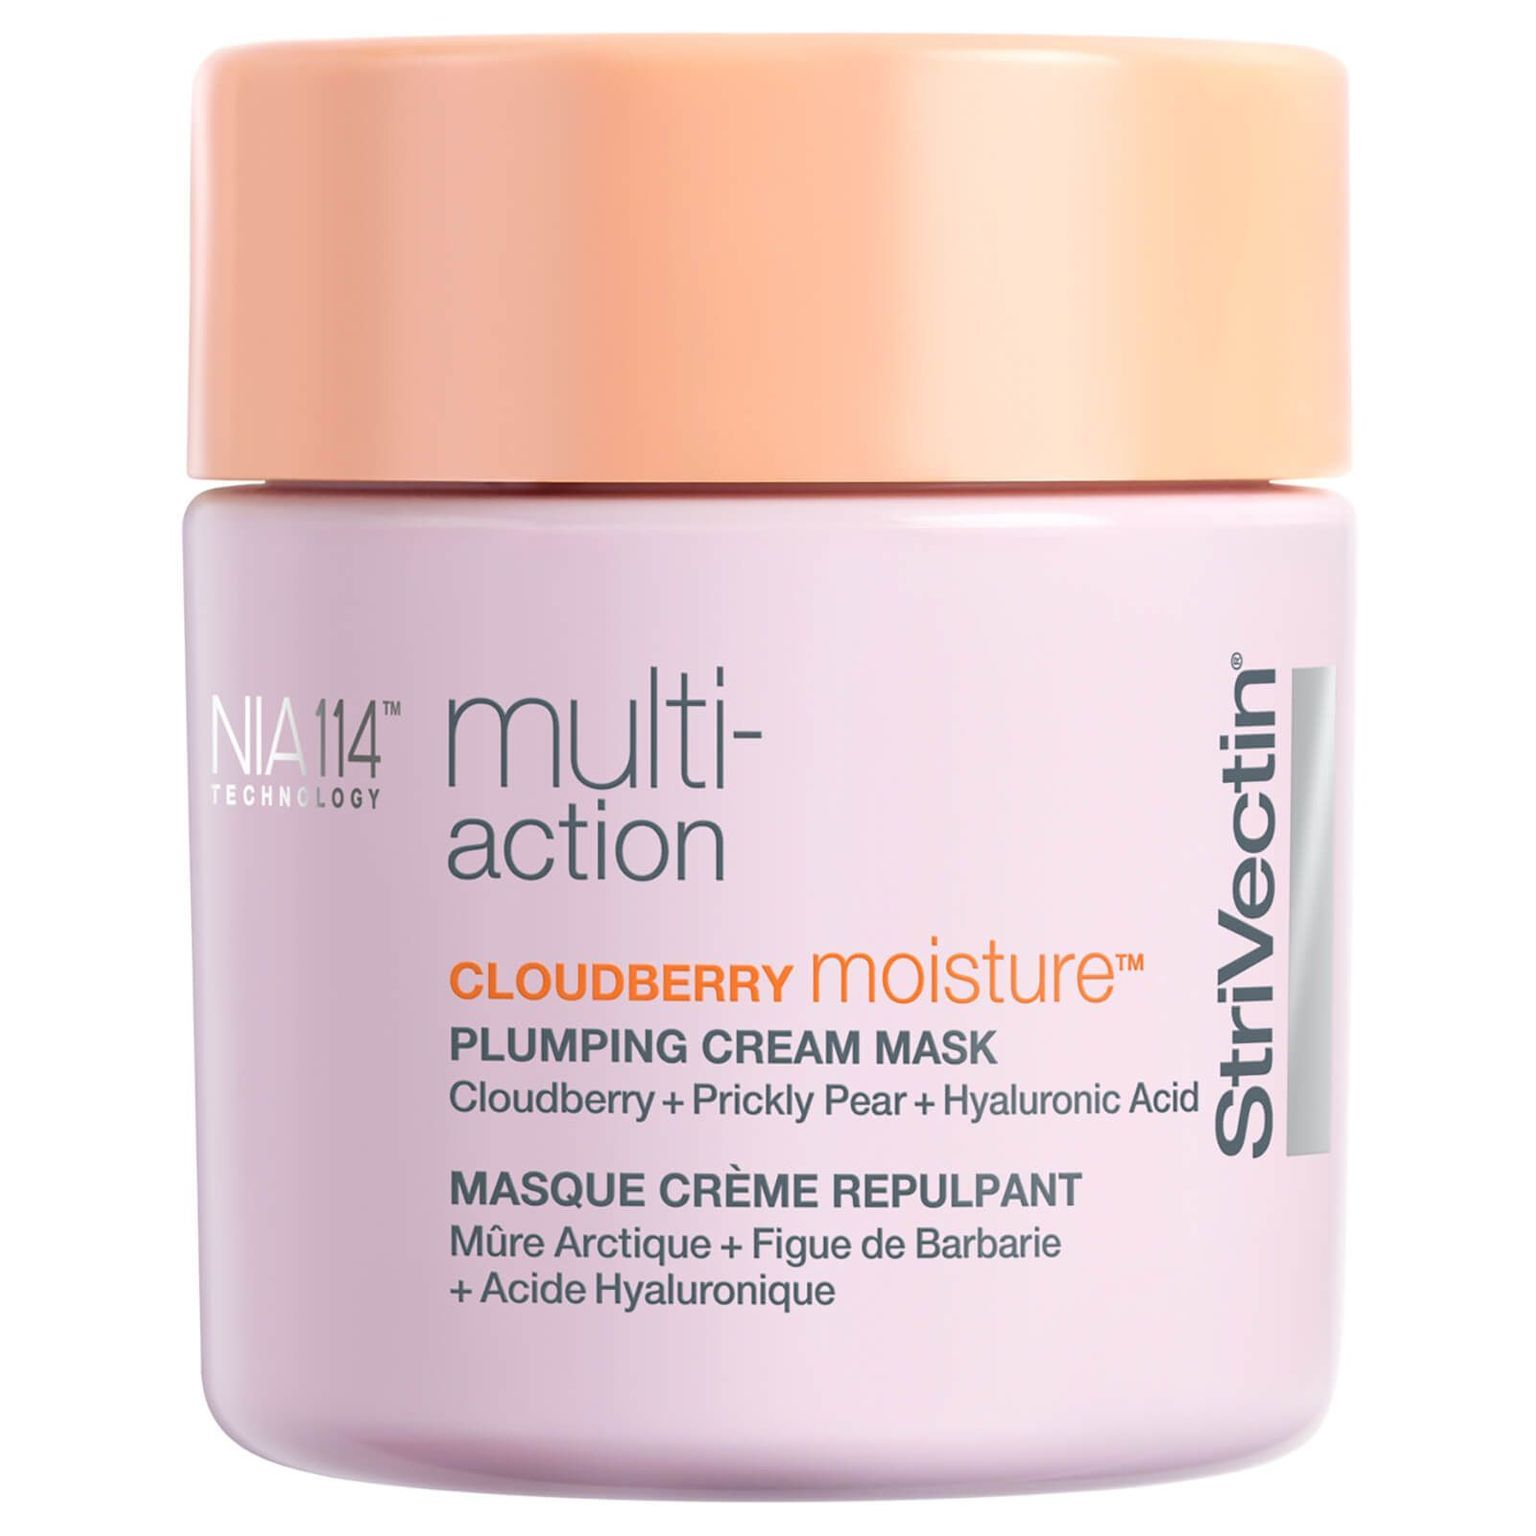 Multi-Action Cloudberry Moisture Plumping Cream Mask